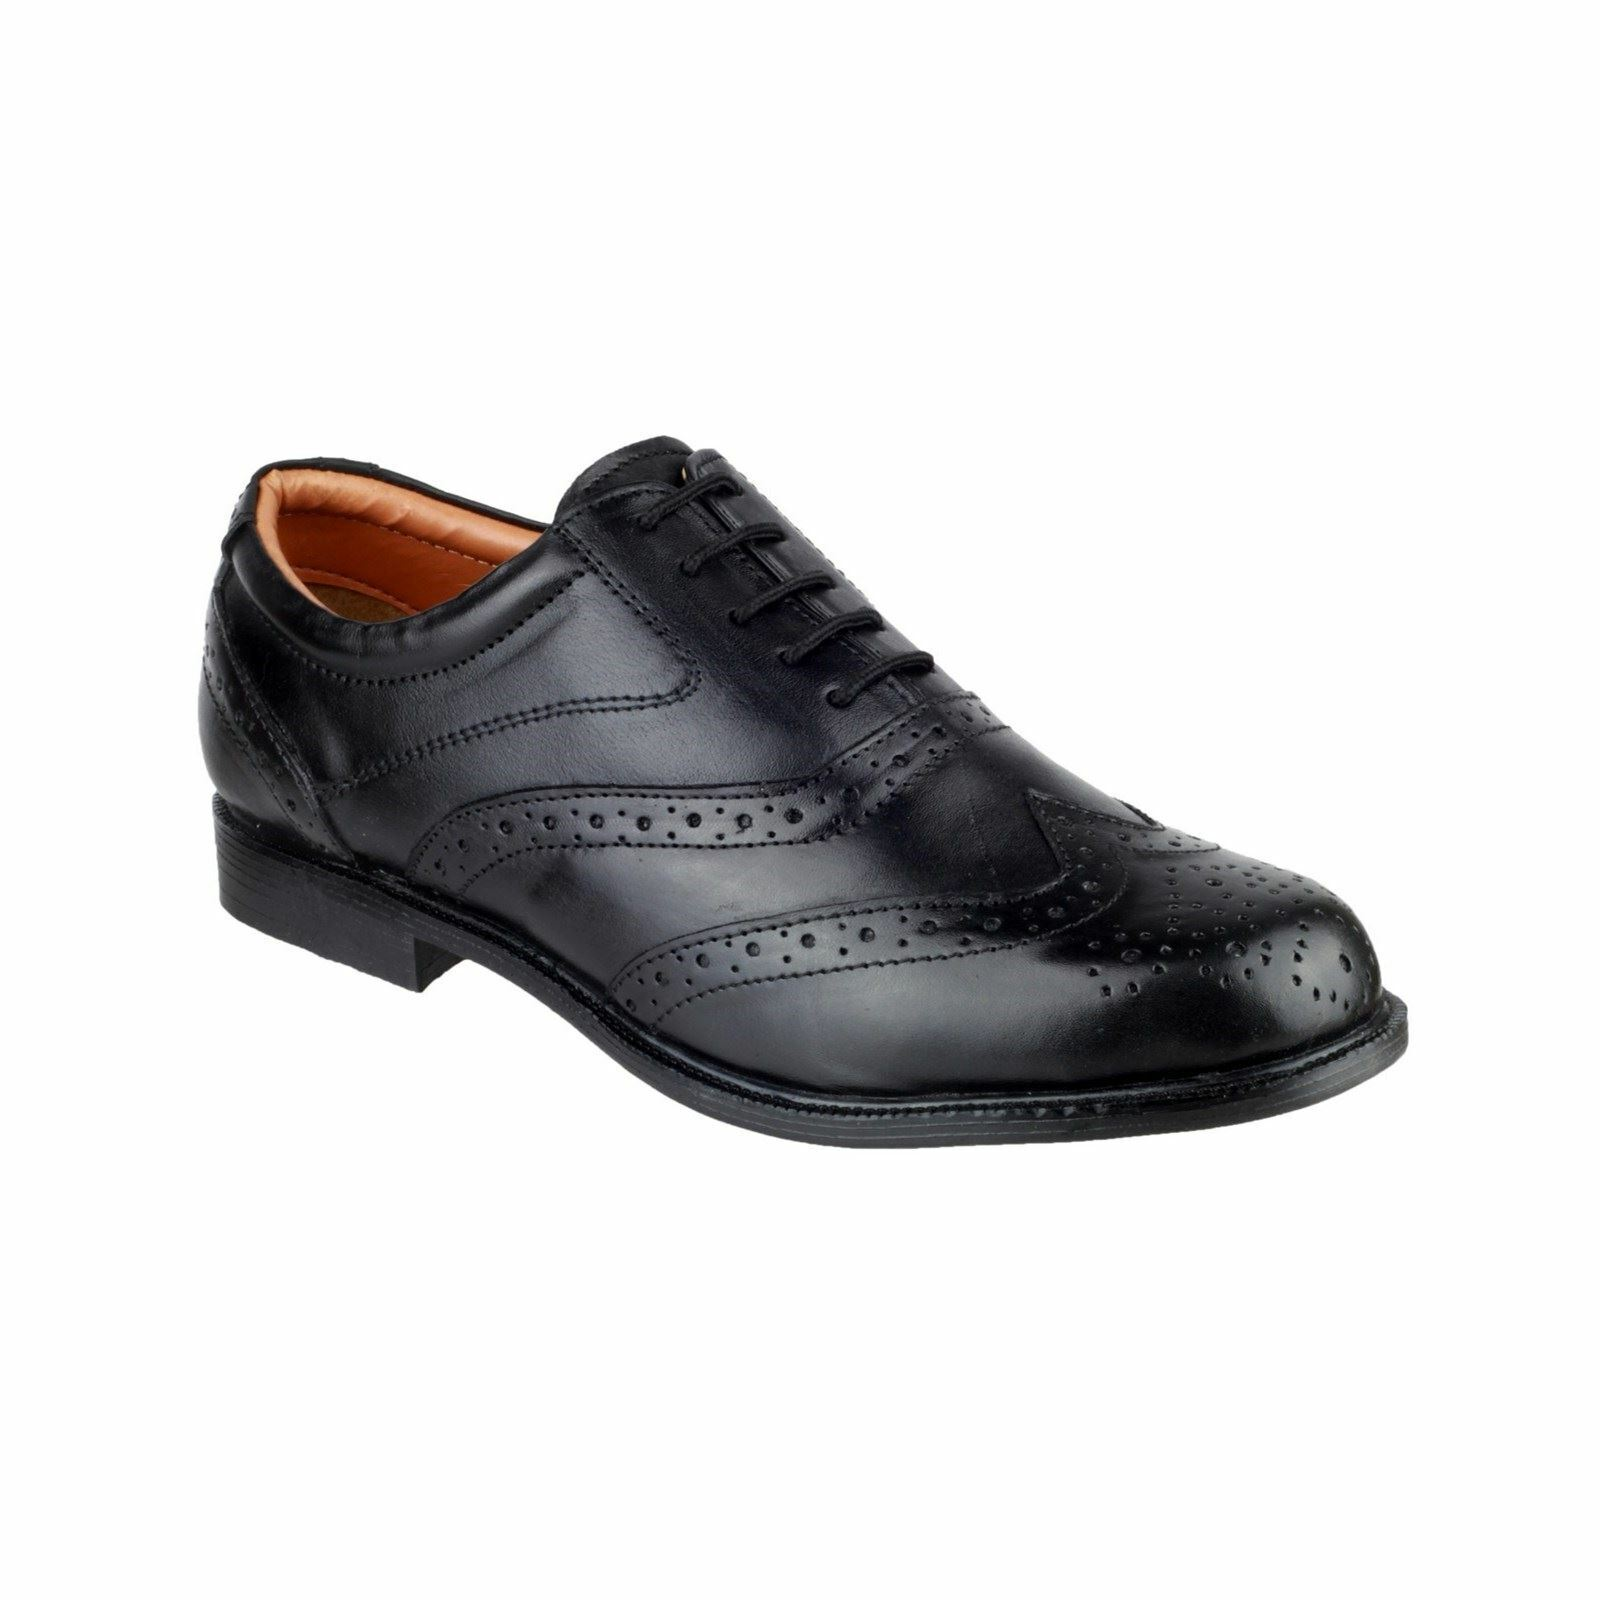 Amblers Lace Mens shoes Liverpool Oxford Brogue Black Non Safety